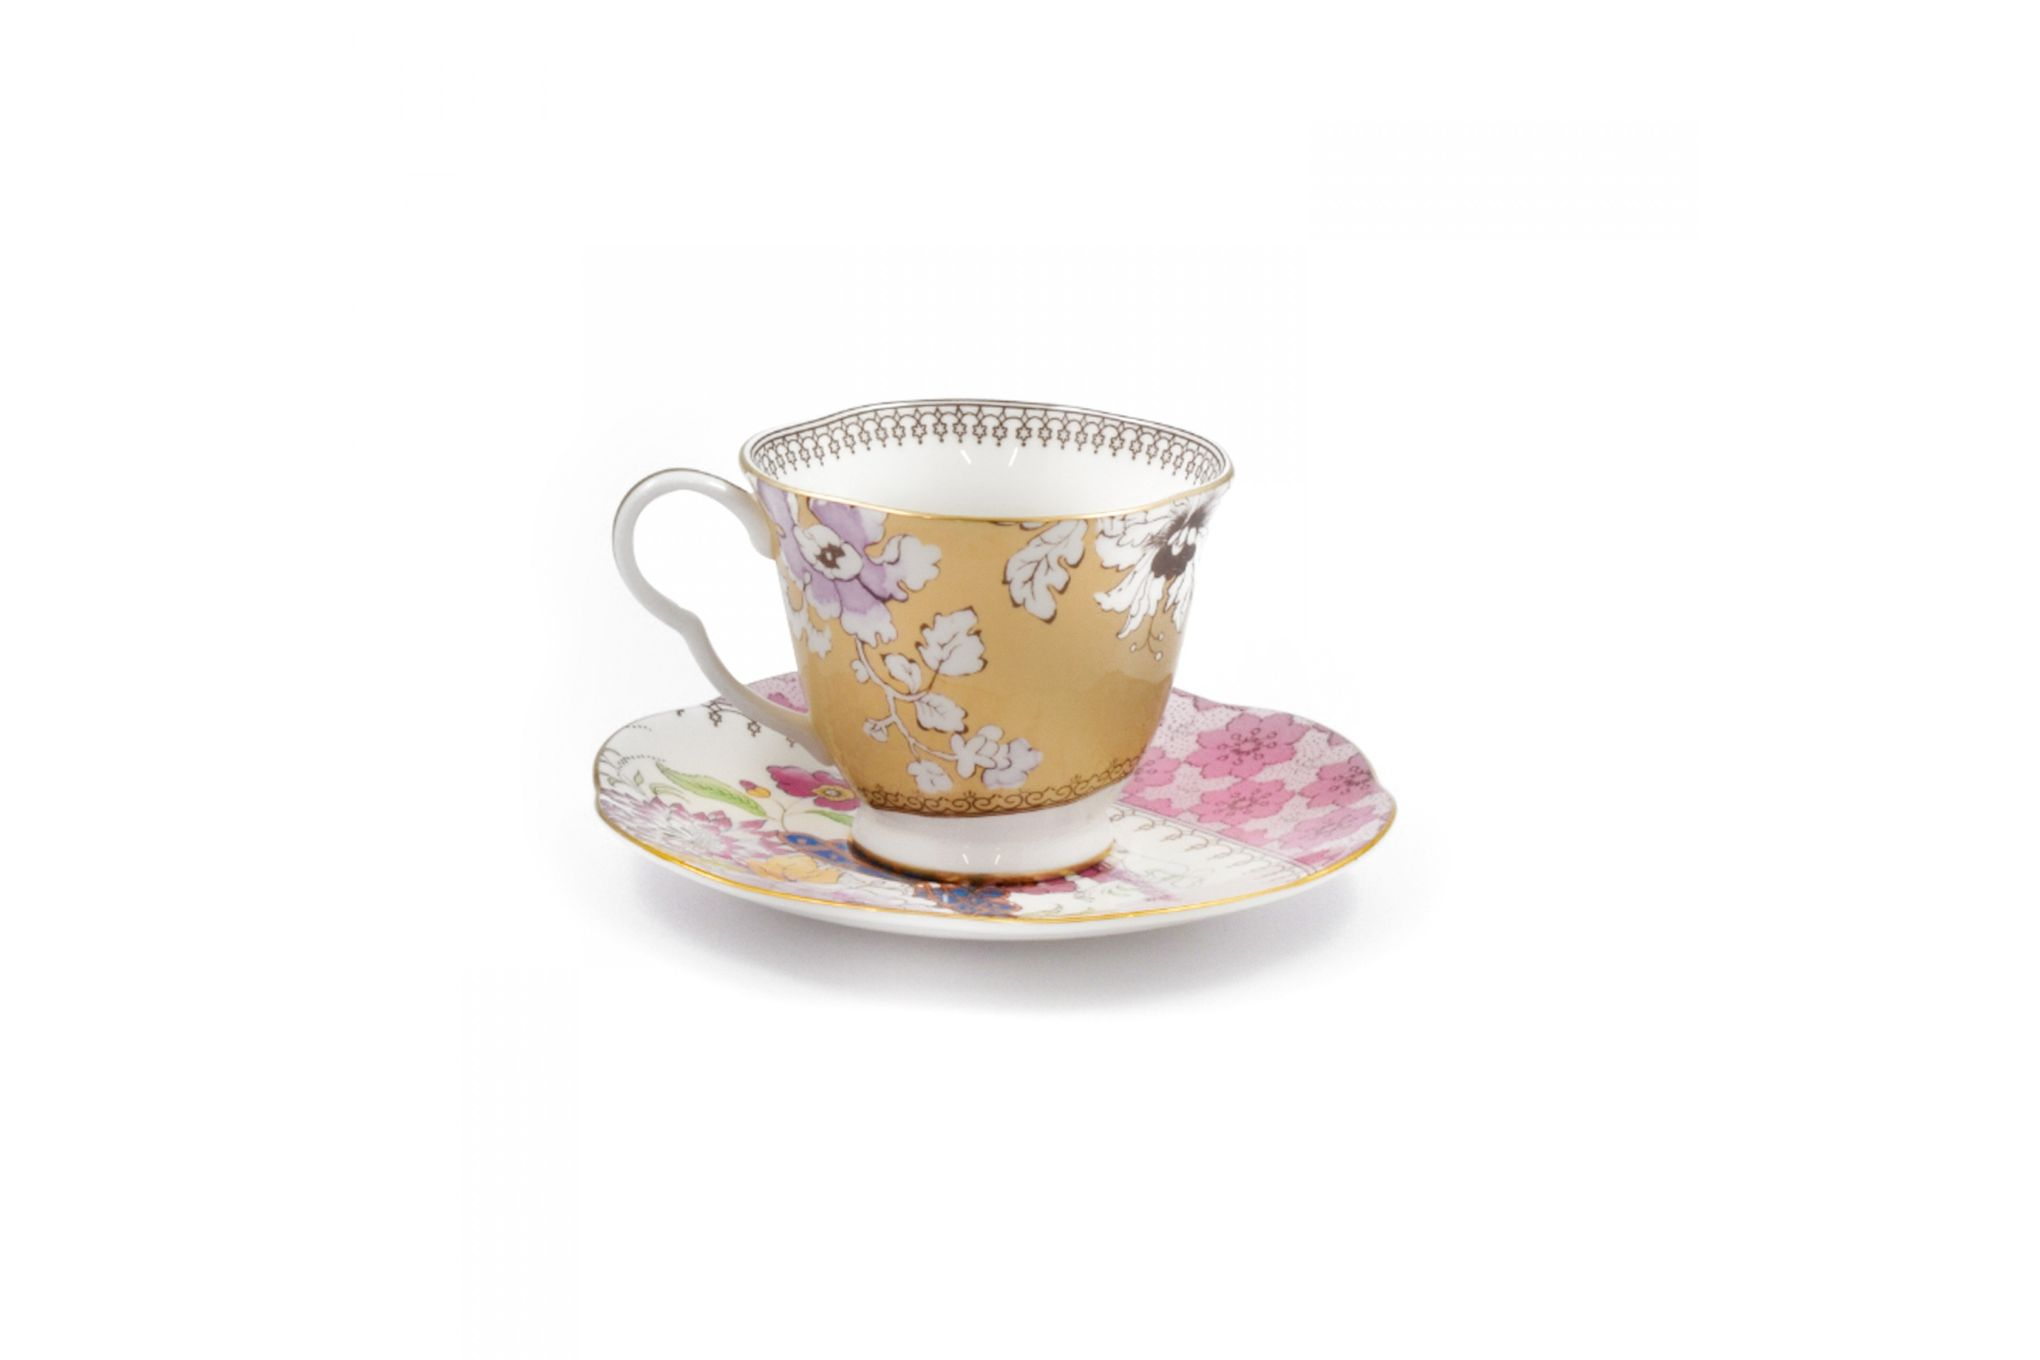 Wedgwood Butterfly Bloom Teacup & Saucer Yellow thumb 2